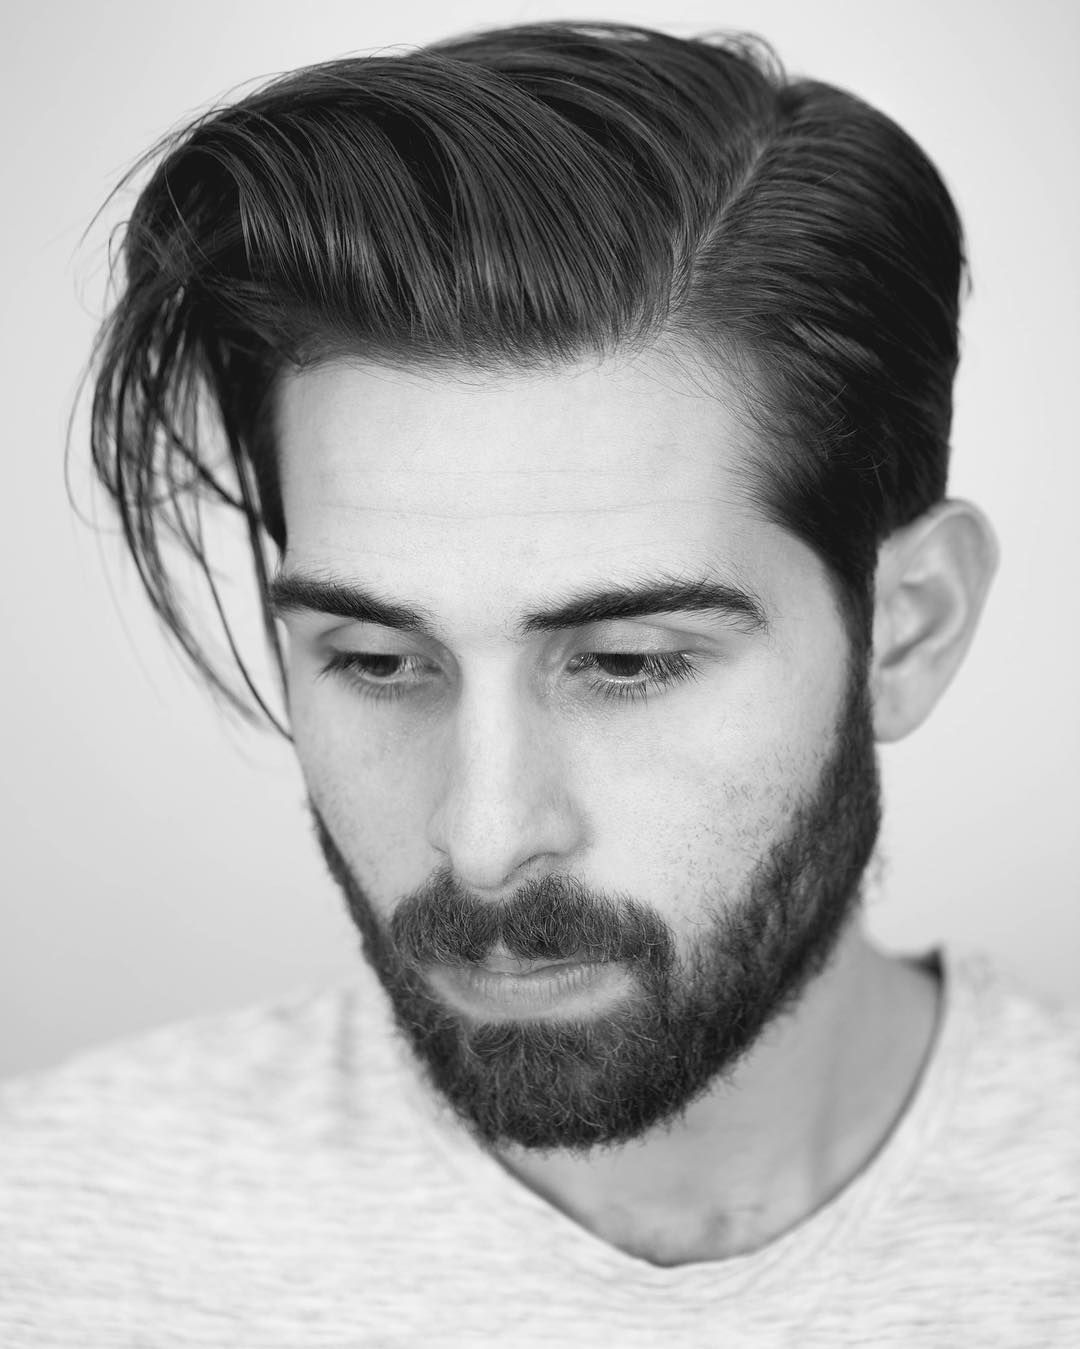 A Long Side Part Hairstyle With A Taper Haircut After 9 Months Of Growing Hair Out For Men Longh Growing Your Hair Out Long Hair Styles Men Growing Out Hair